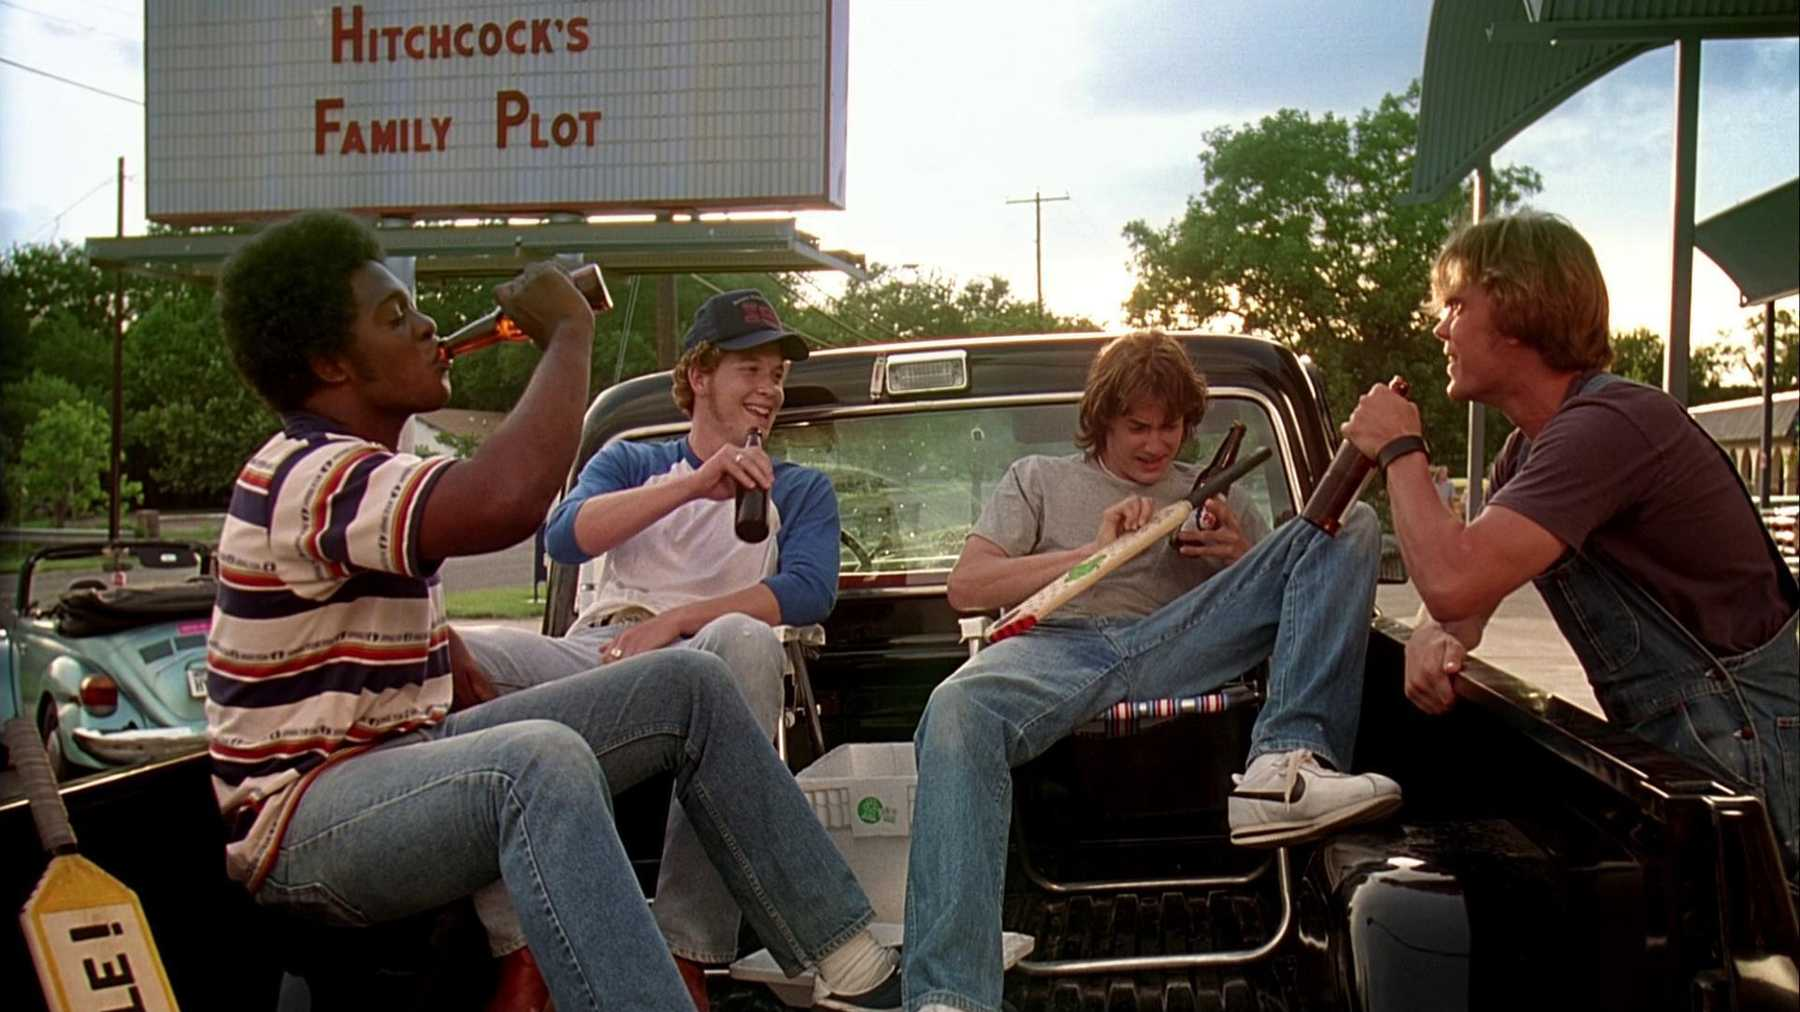 Melvin (Jason O. Smith), Benny (Cole Hauser), Pink (Jason London), and Don (Sasha Jenson) sit in the back of a pickup truck drinking beers and chatting.